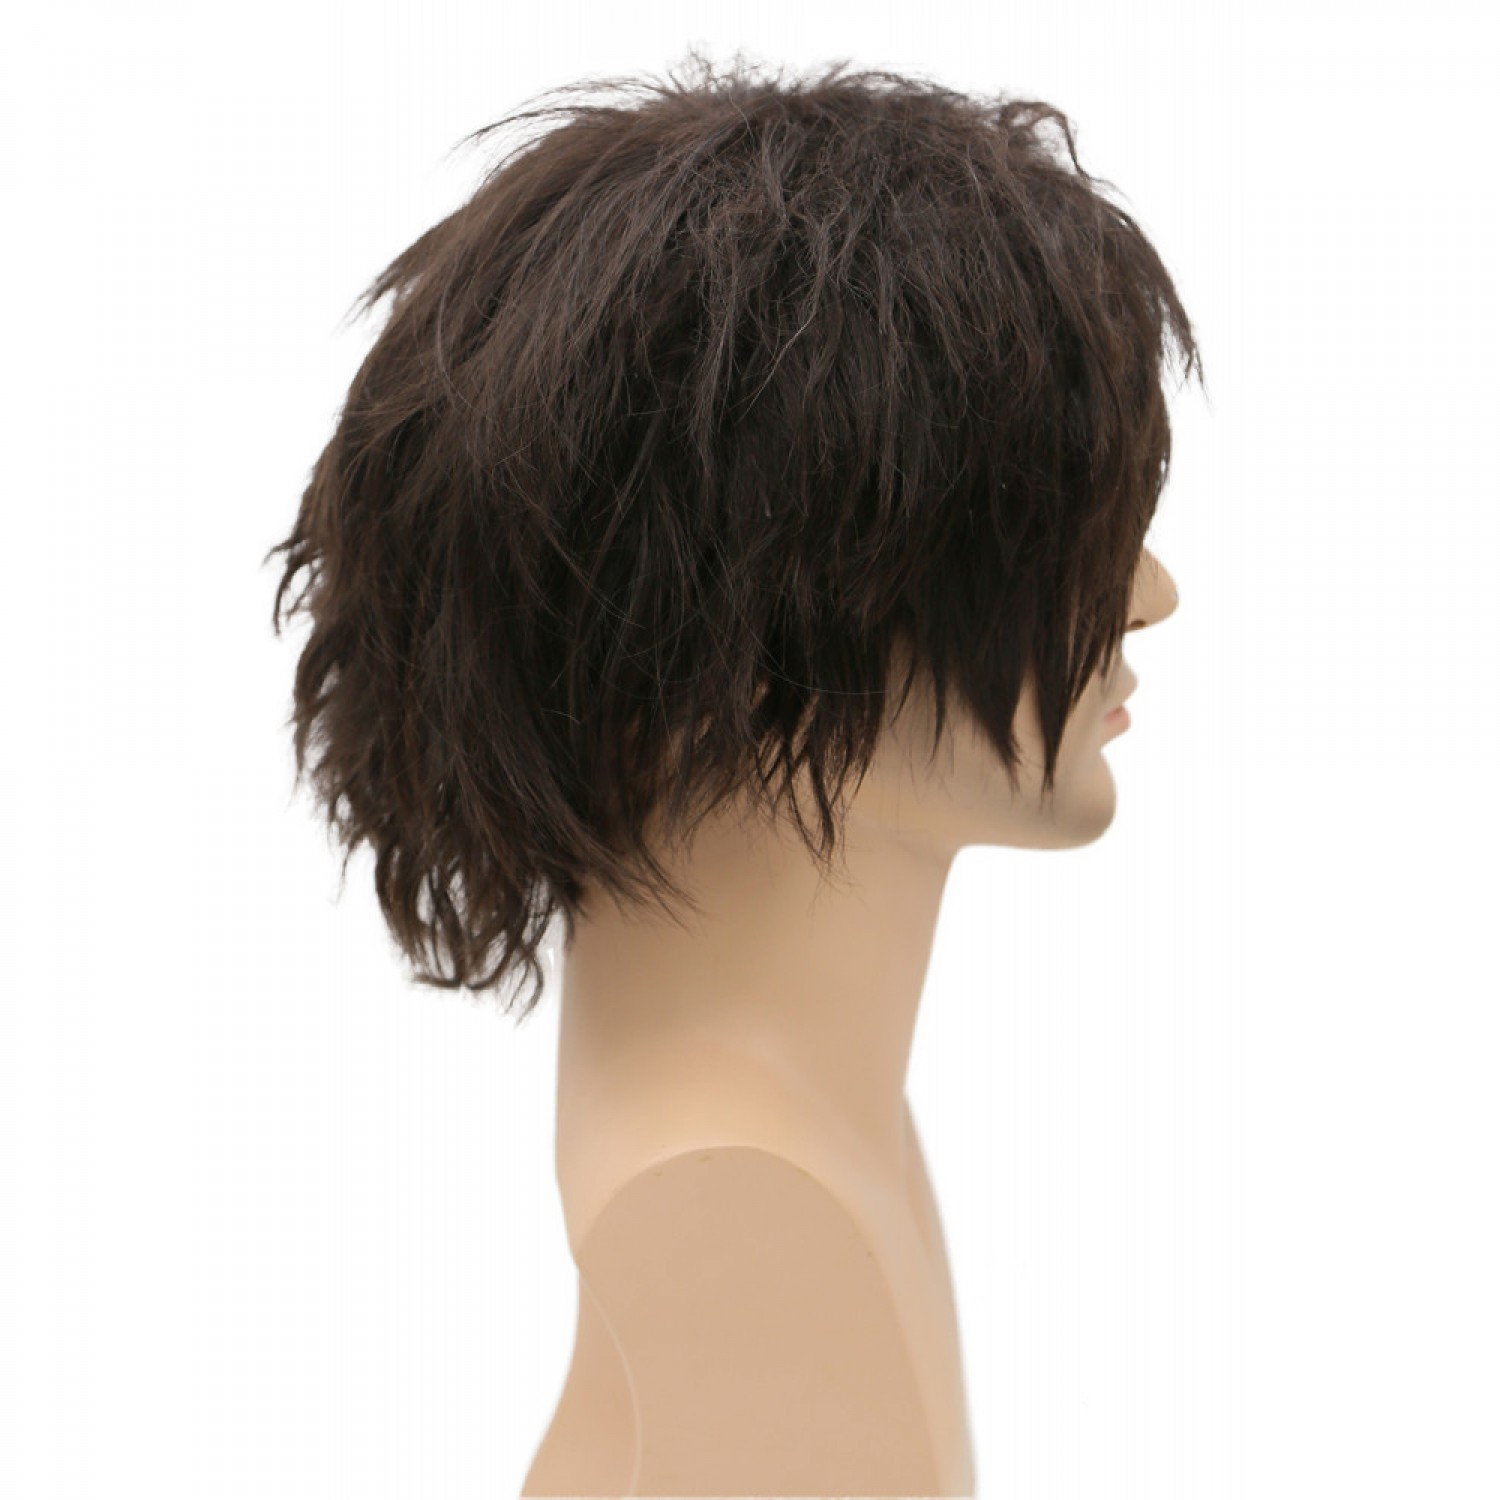 Daryl Wig The Walking Dead Cosplay TV Costume Accessories Wig Hair Halloween Party